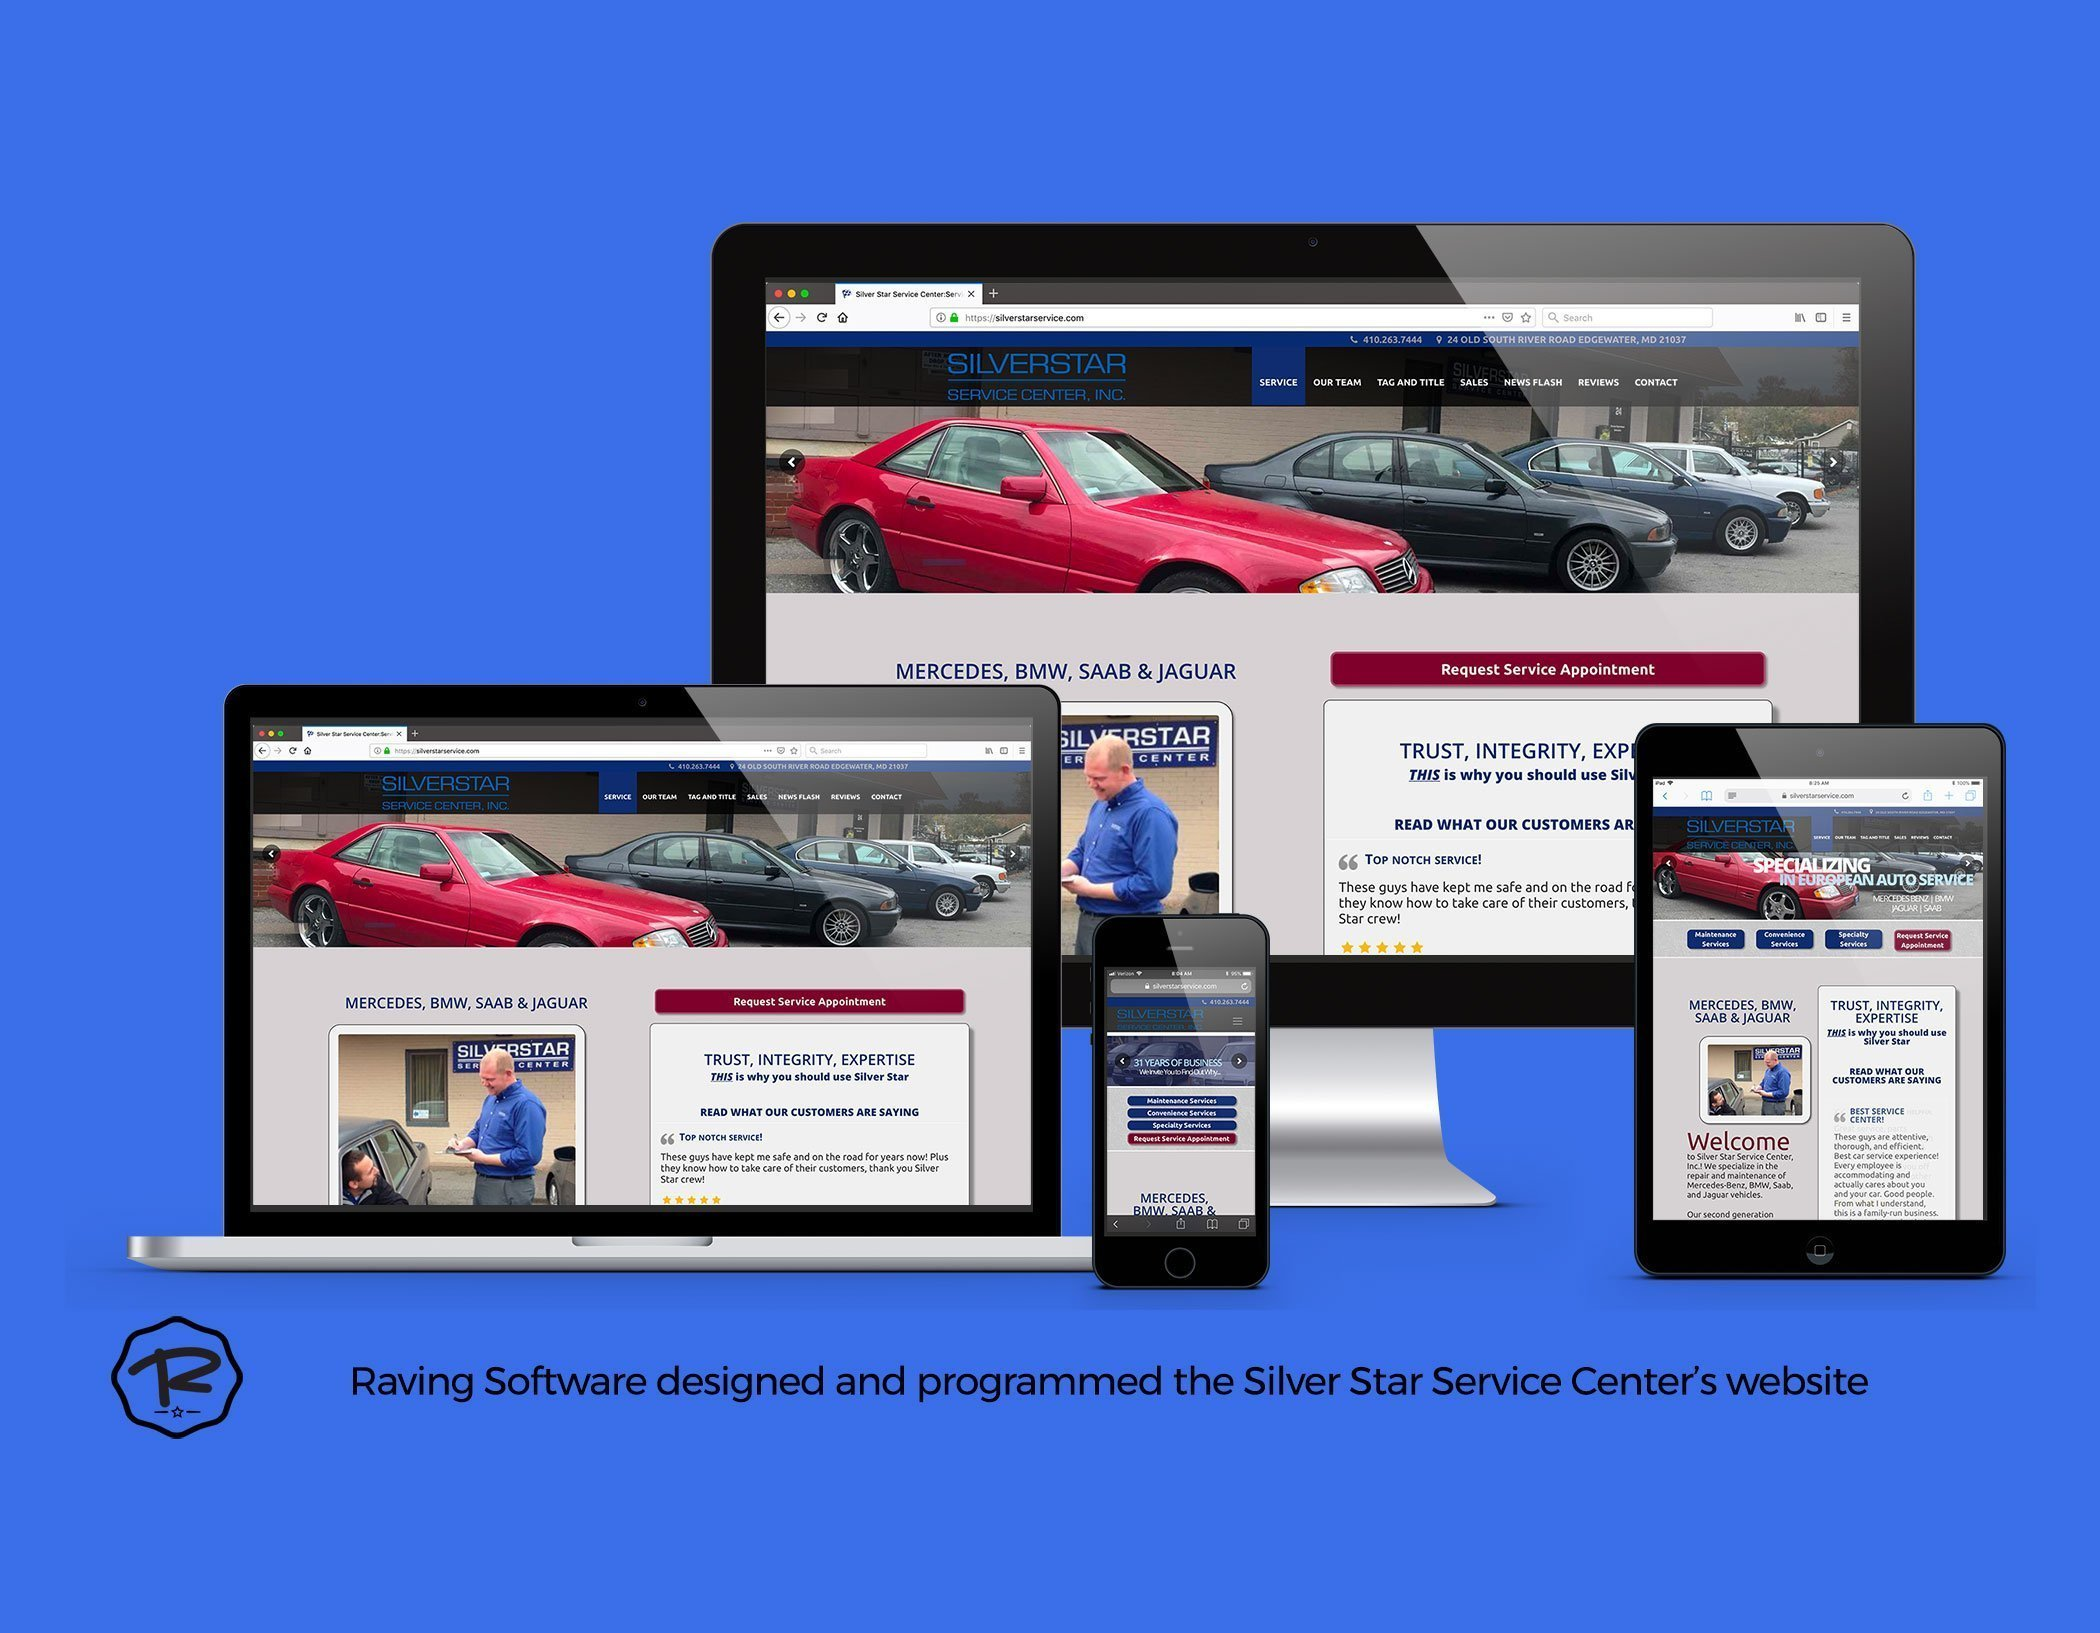 Silver Star Service Center website created by Raving Software